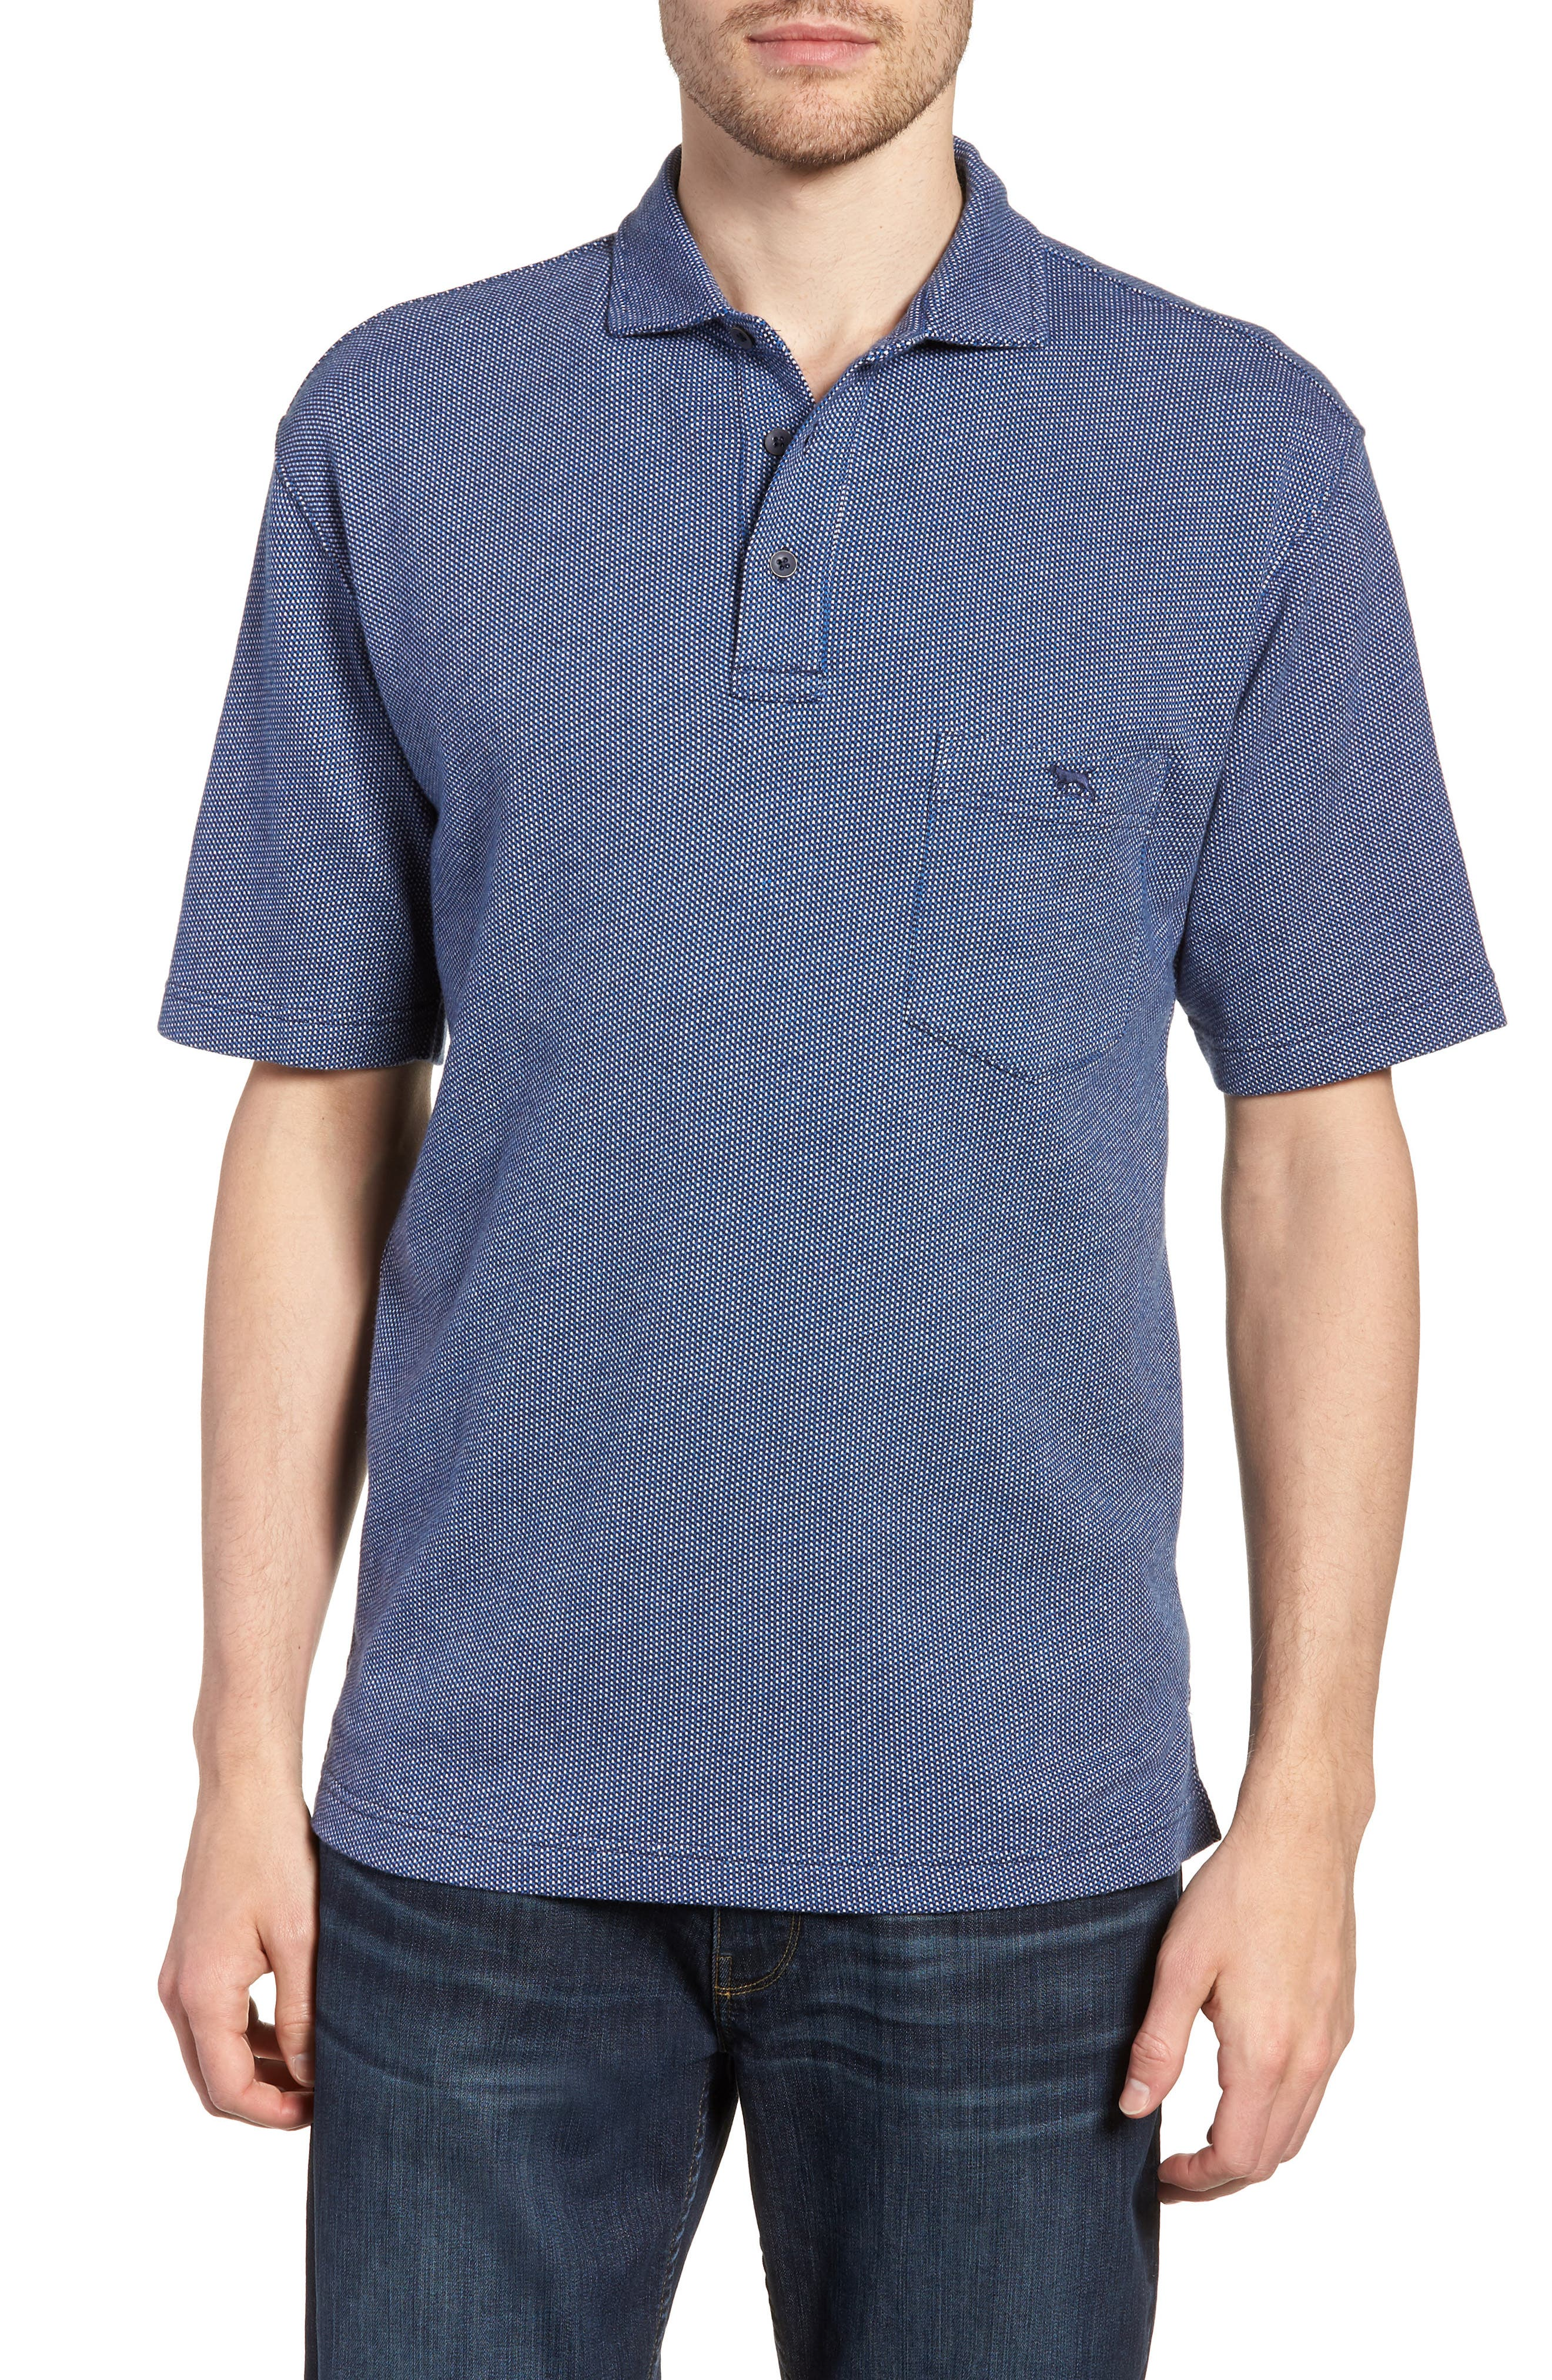 Springs Flat Regular Fit Polo,                         Main,                         color, 433